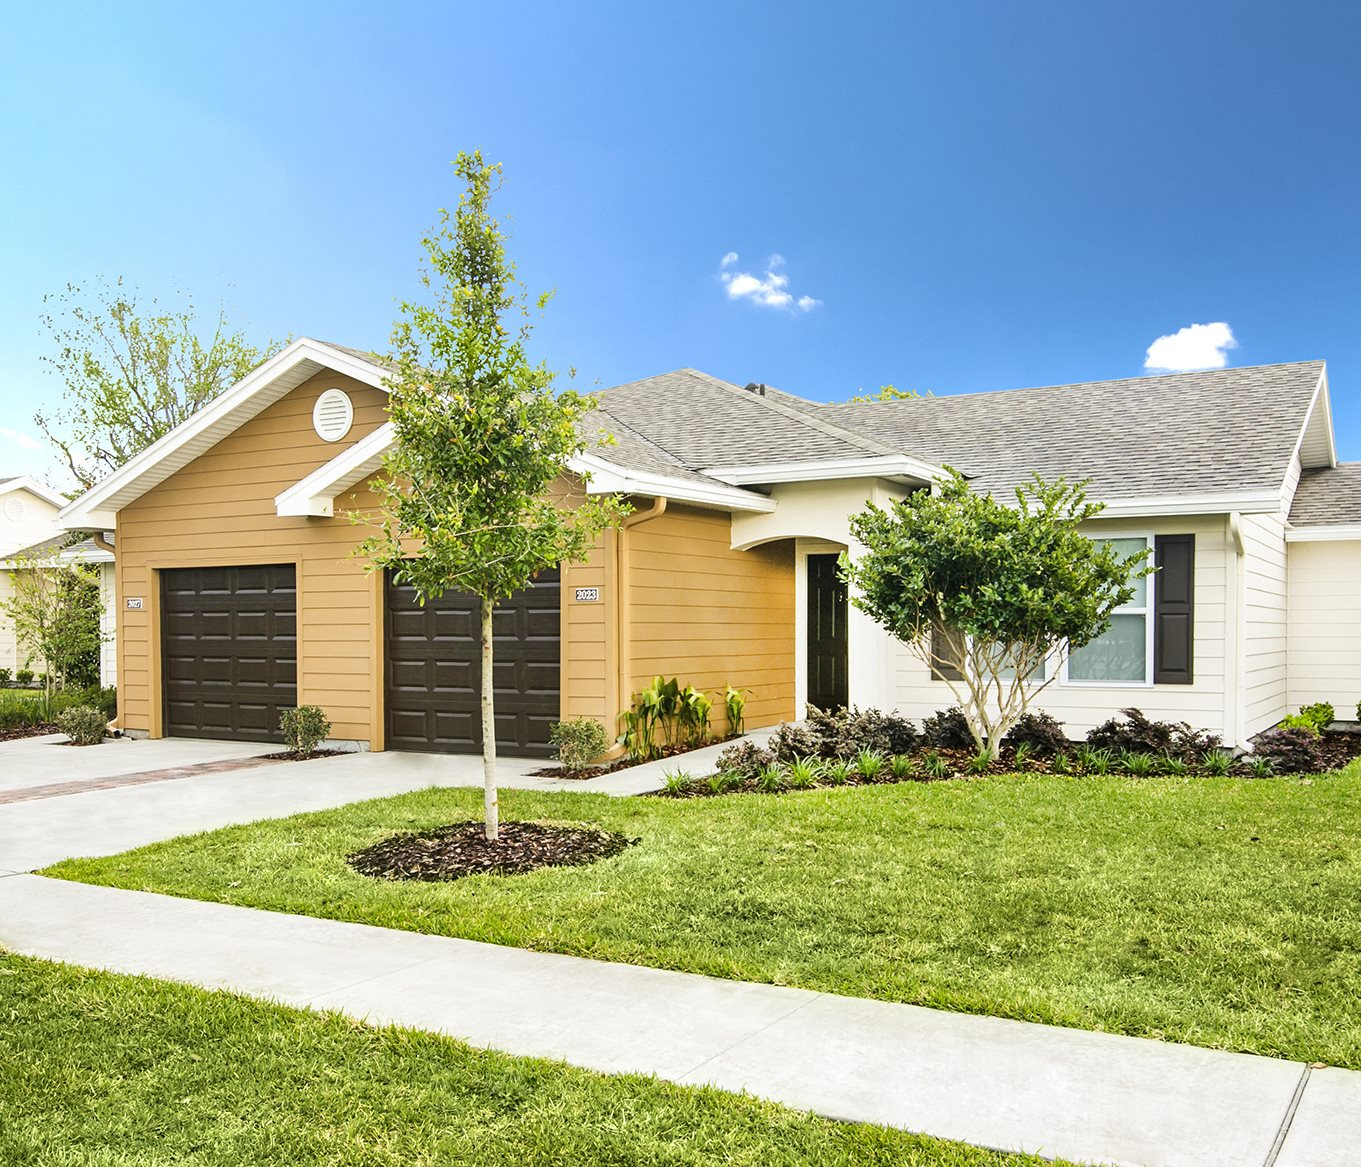 Concord Apartments: Rental Community In Kissimmee, FL